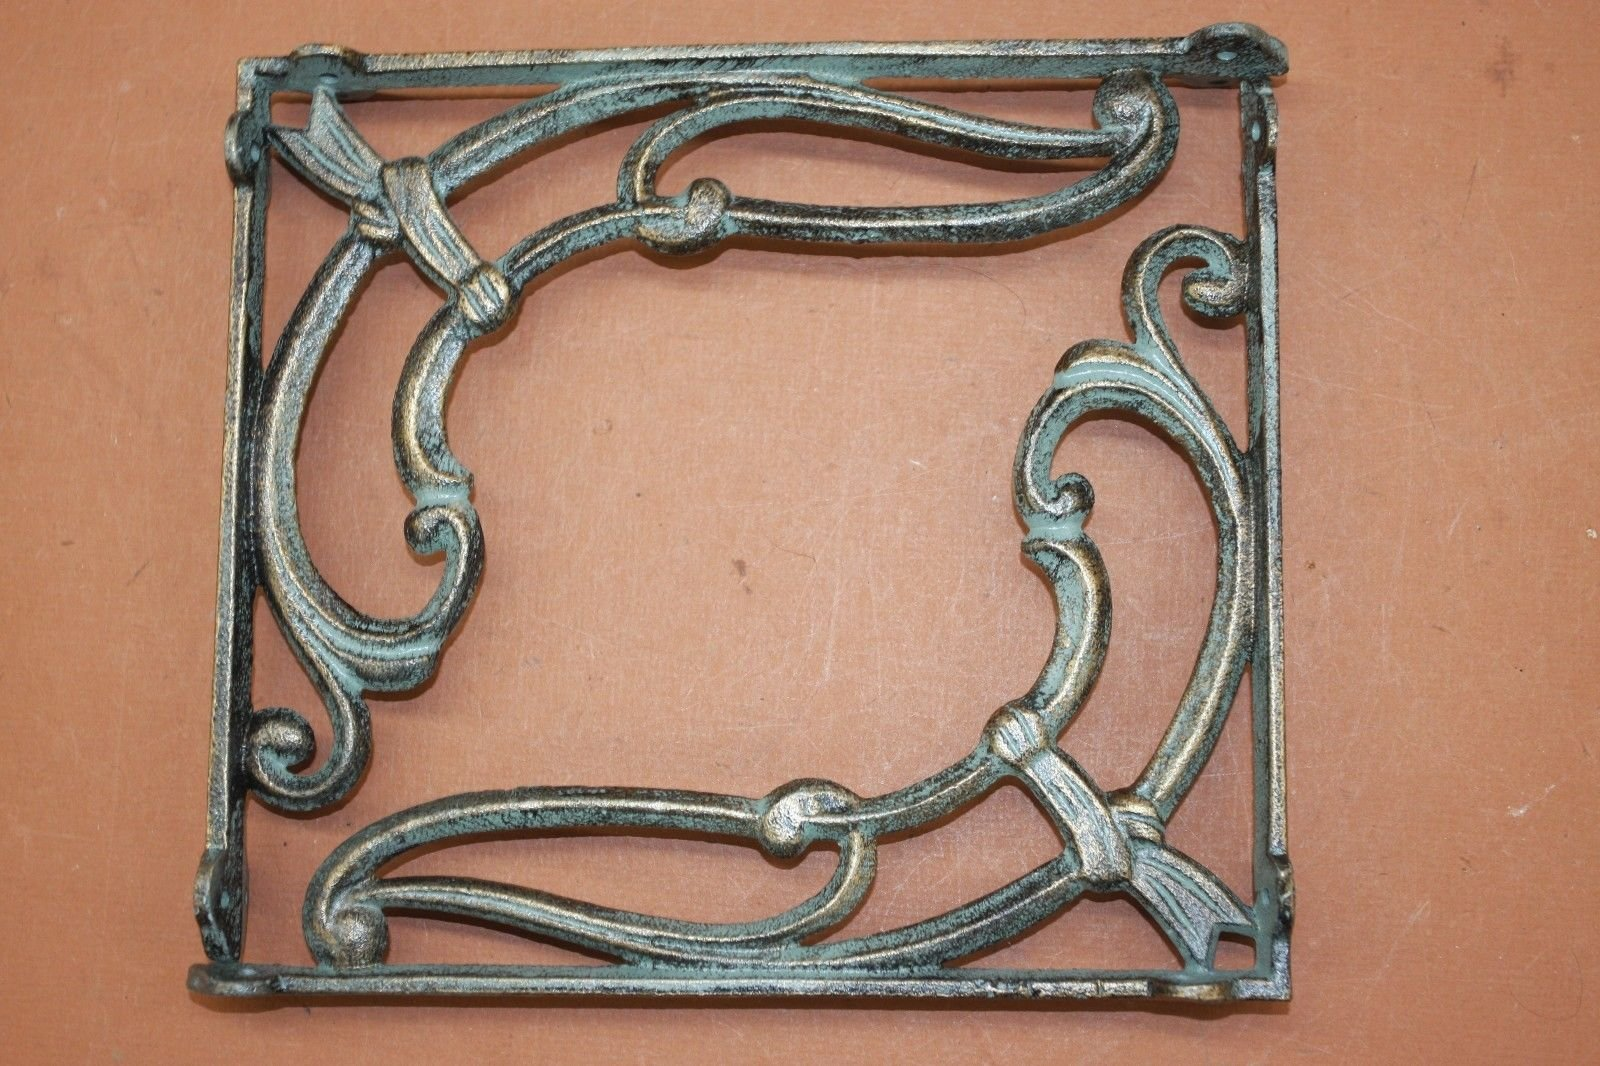 1920's Art Deco Vintage-Style Shelf Brackets Cast Iron Bronze-look Finish, 9 7/8'', B-48, Set of 8 by Cast Iron Home Decor Collectibles